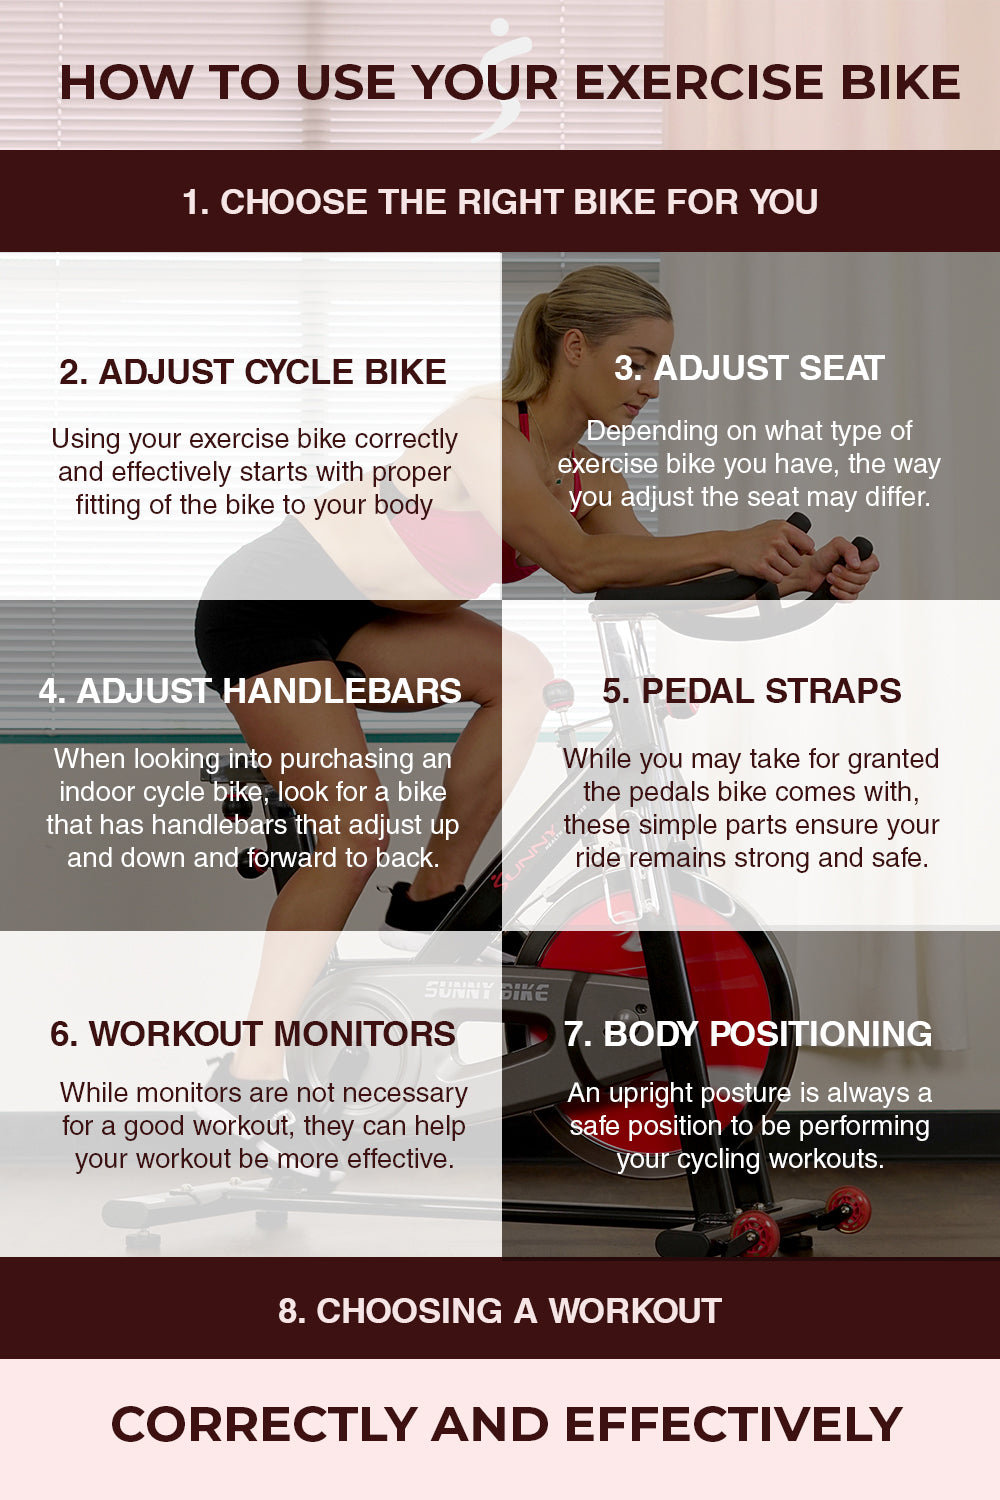 how to use exercise bike infographic